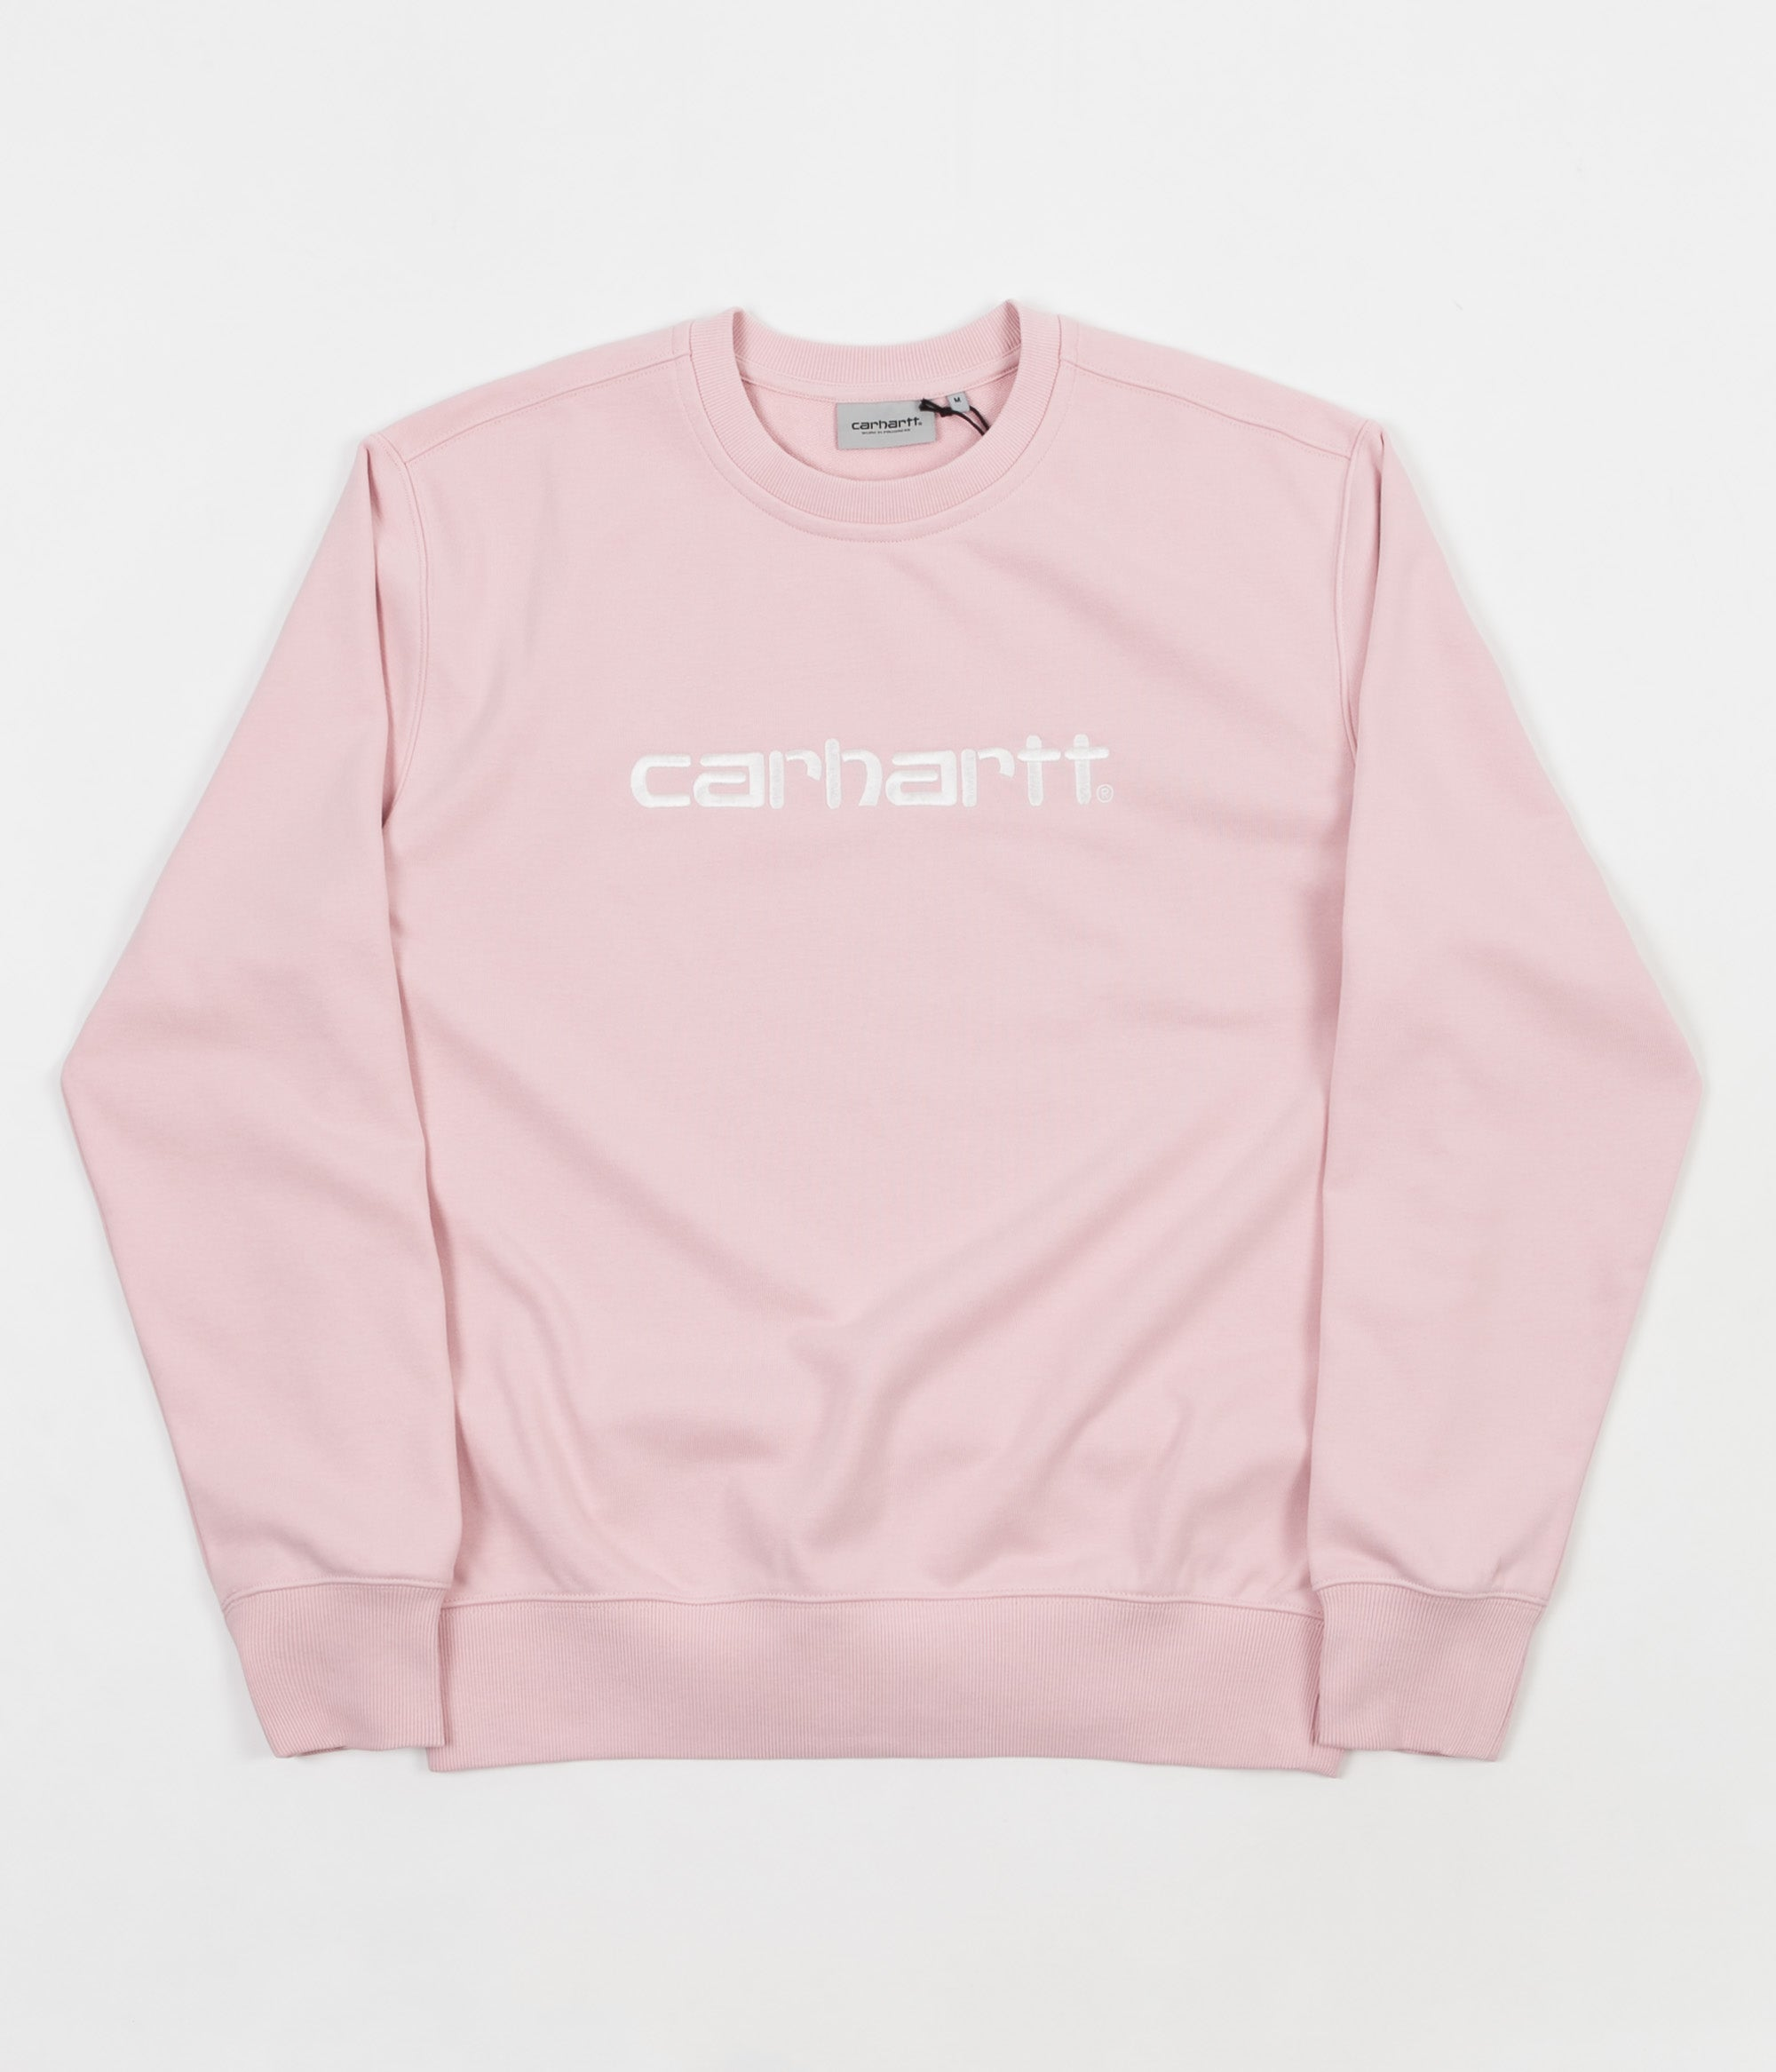 Carhartt Crewneck Sweatshirt - Sandy Rose / Wax